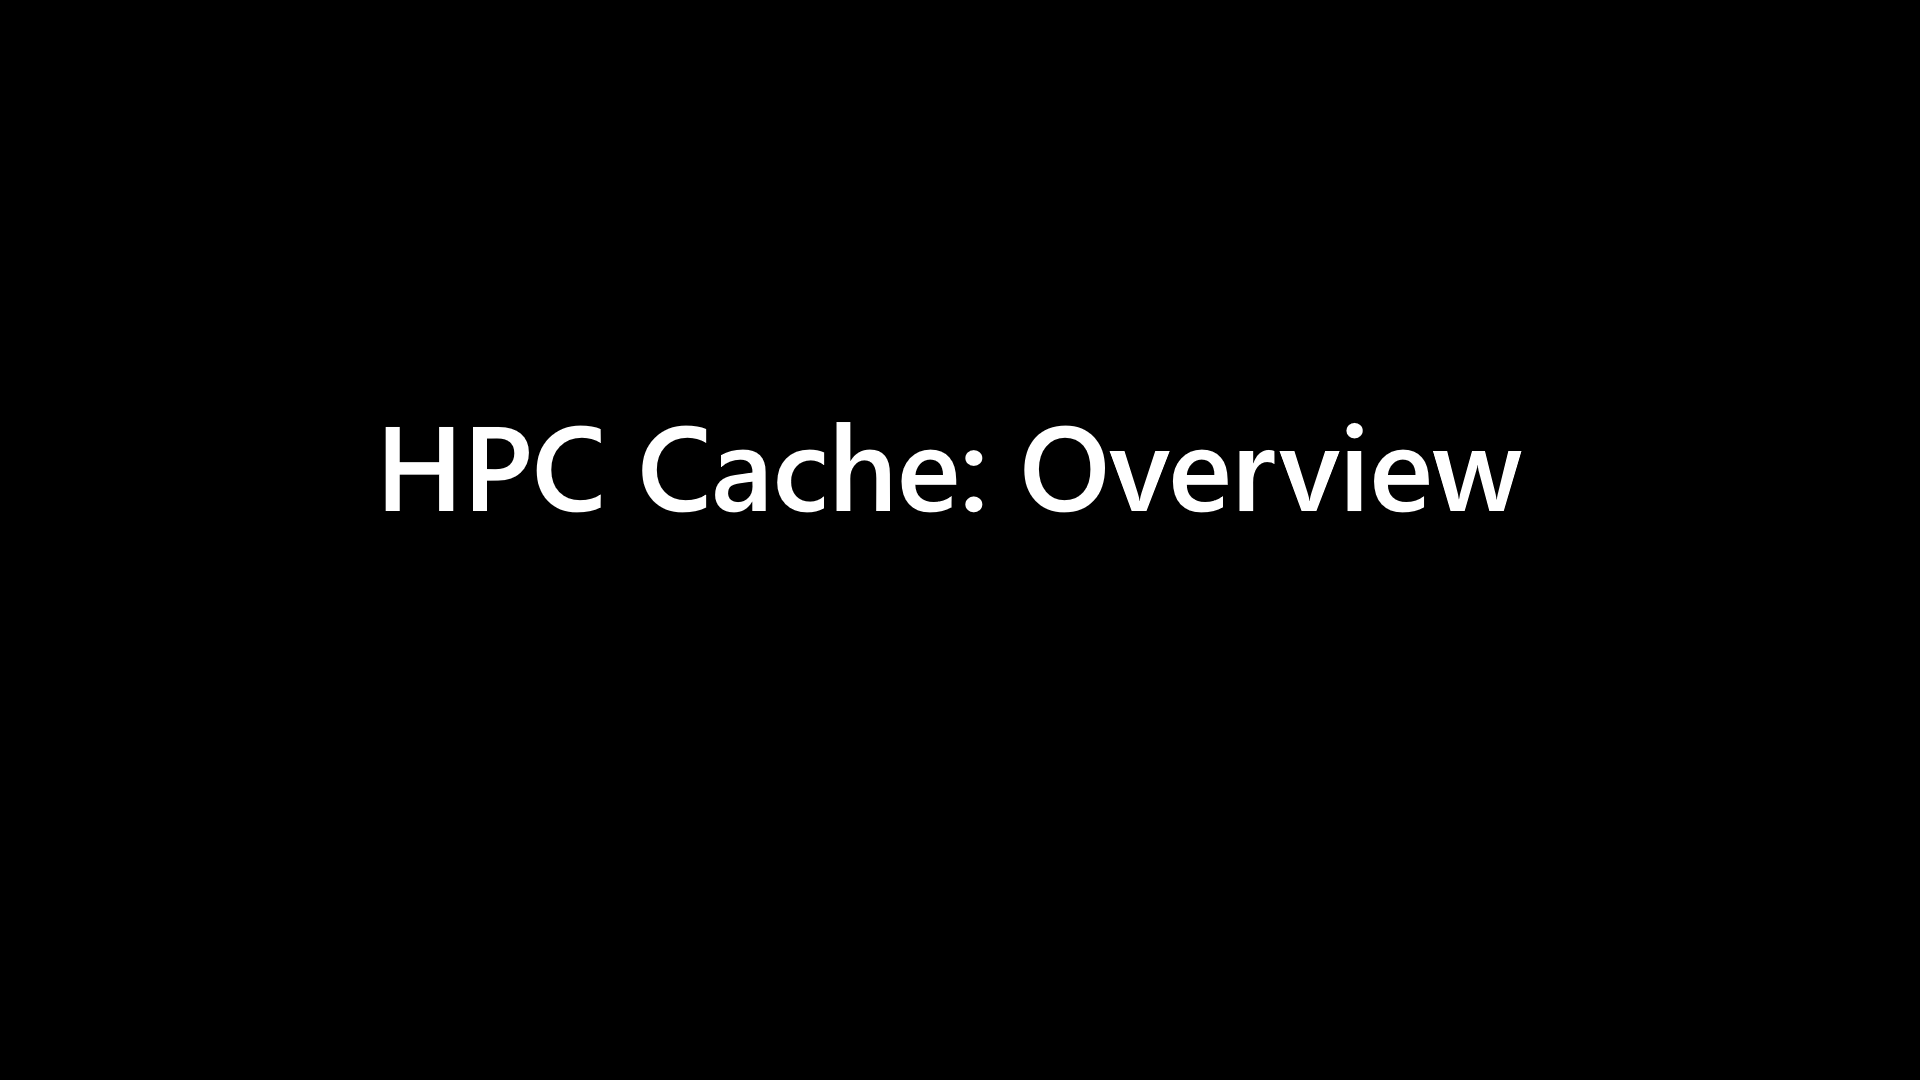 HPC Cache Overview